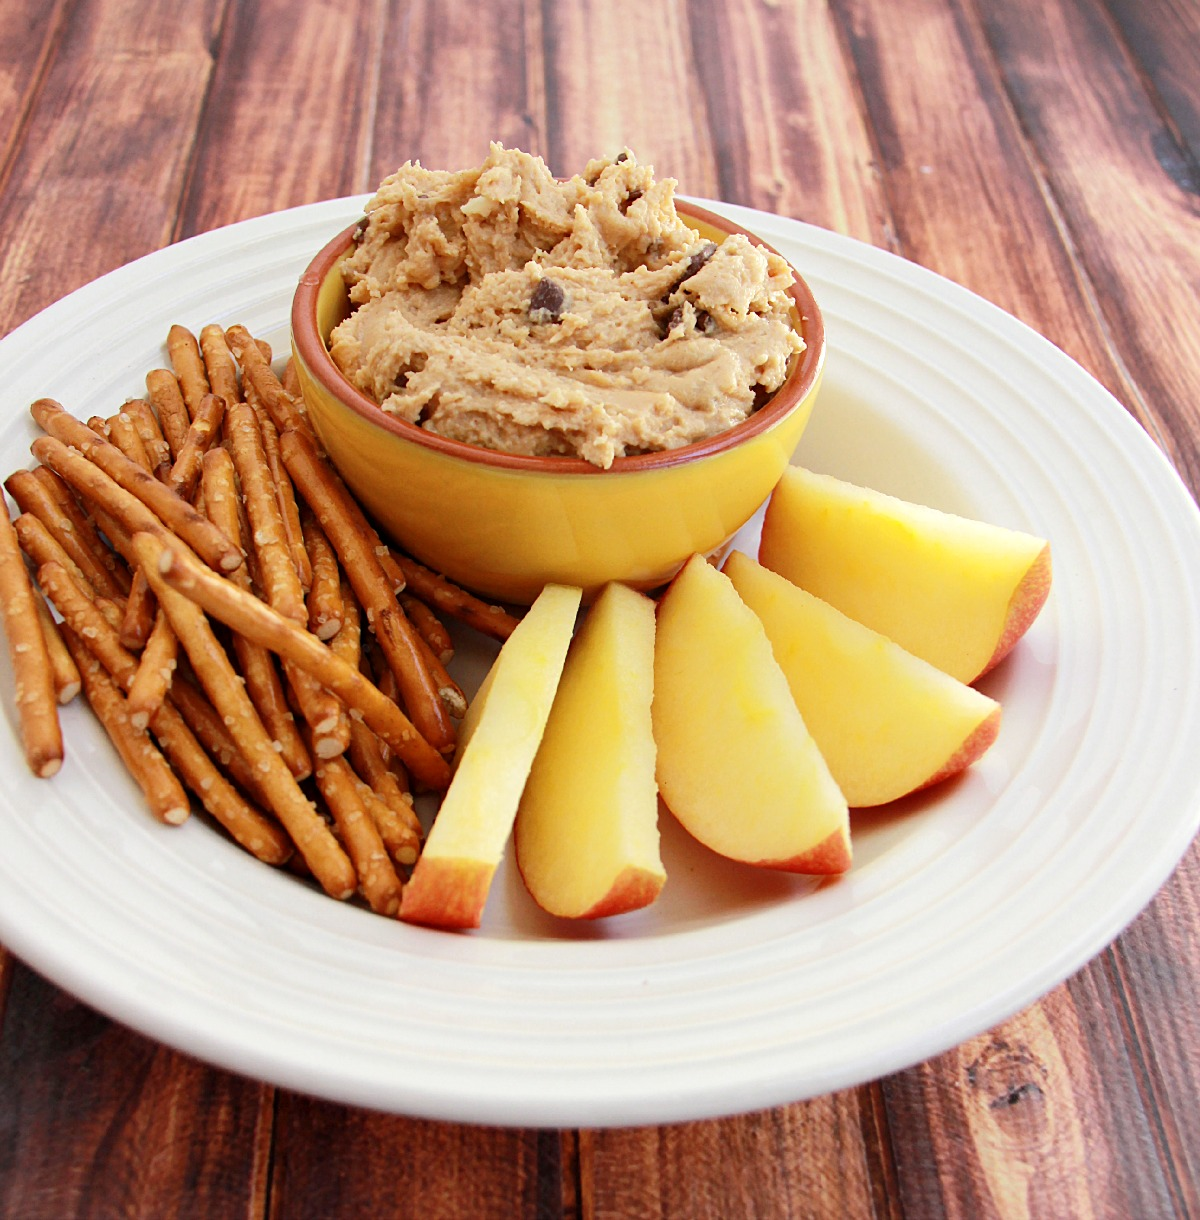 Looking for a way to eat cookie dough? Try this delicious peanut butter cookie dough dip and your sweet tooth will be thanking you. Great as a party dessert or as a tasty fruit dip, Peanut butter chocolate chip cookie dough dip will become a favorite.